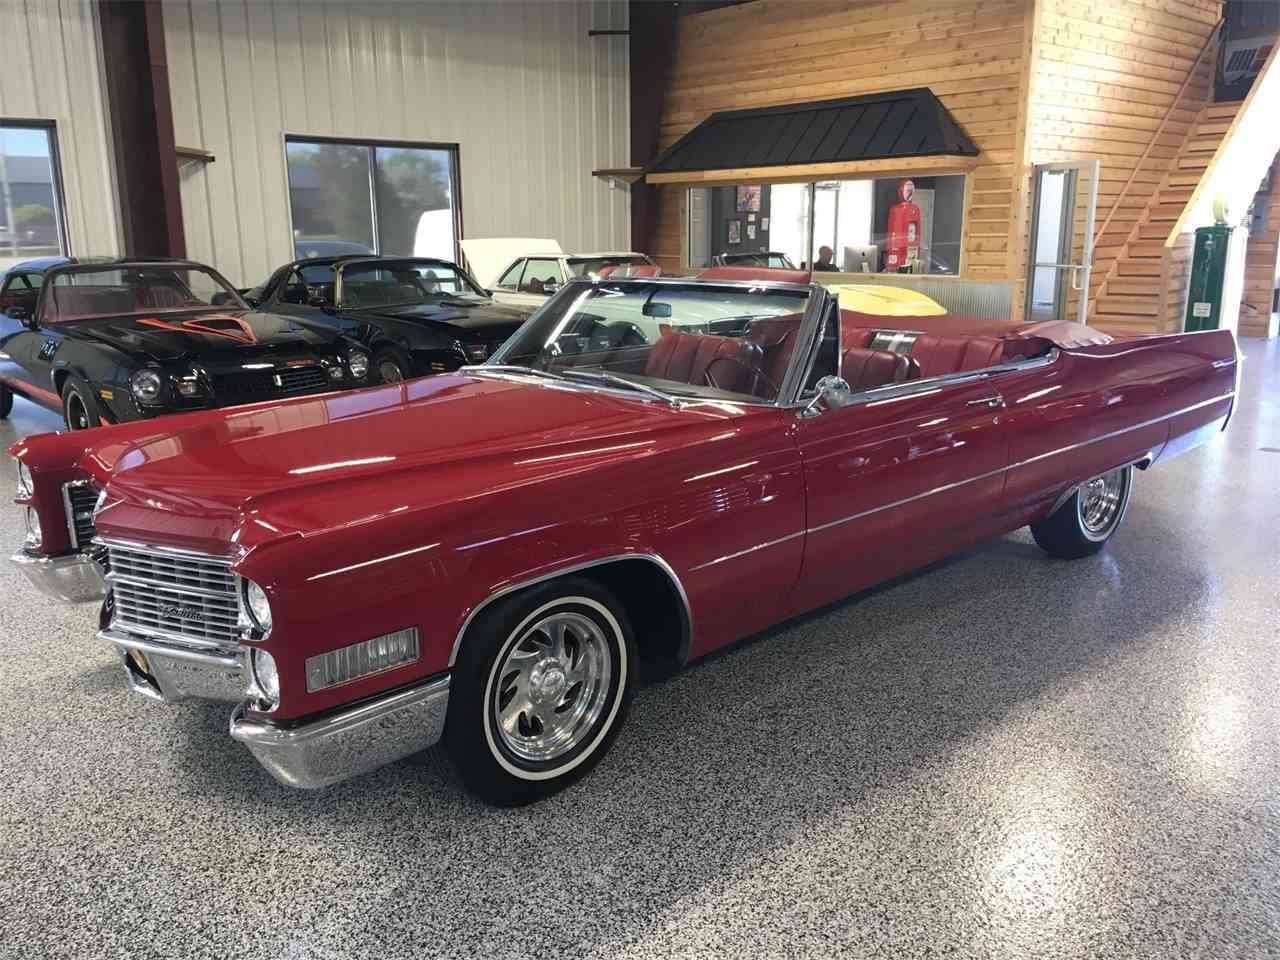 for sale honest cadillac the corner john classic from s parts cadillacs to caddy